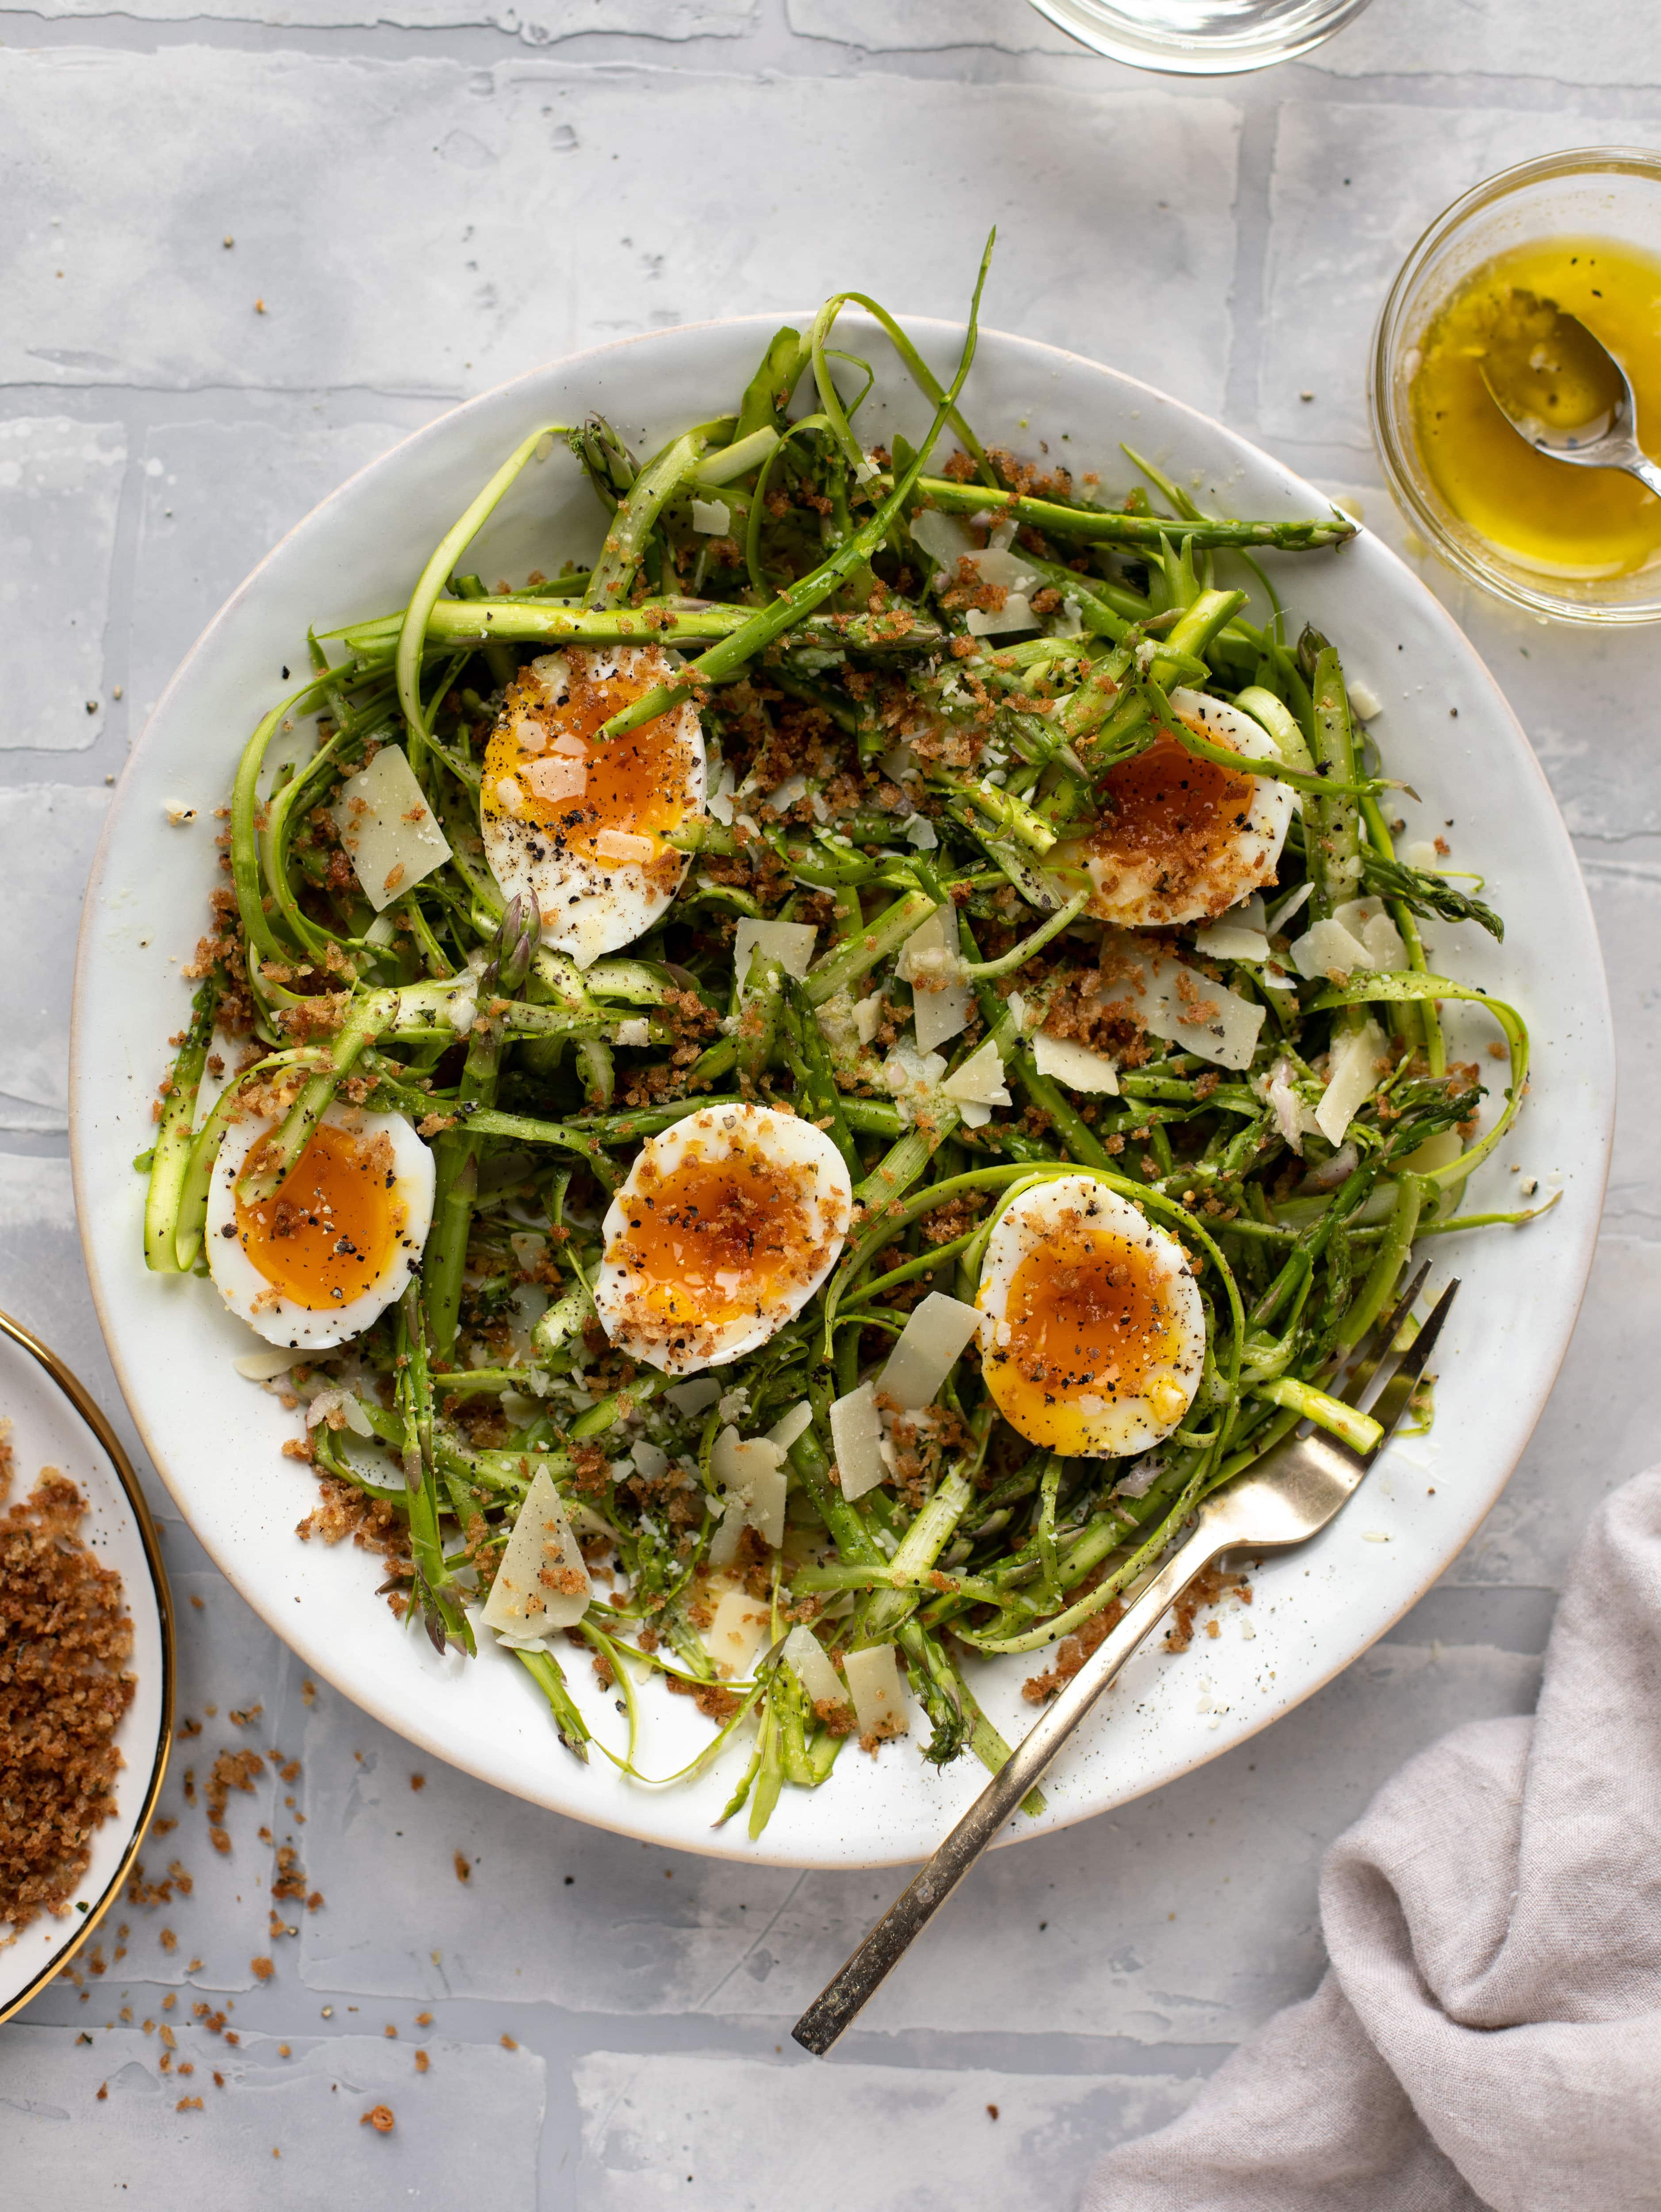 This shaved asparagus salad is tossed with a delicious parmesan vinaigrette, then topped with soft boiled eggs and finished with crunchy garlic breadcrumbs!